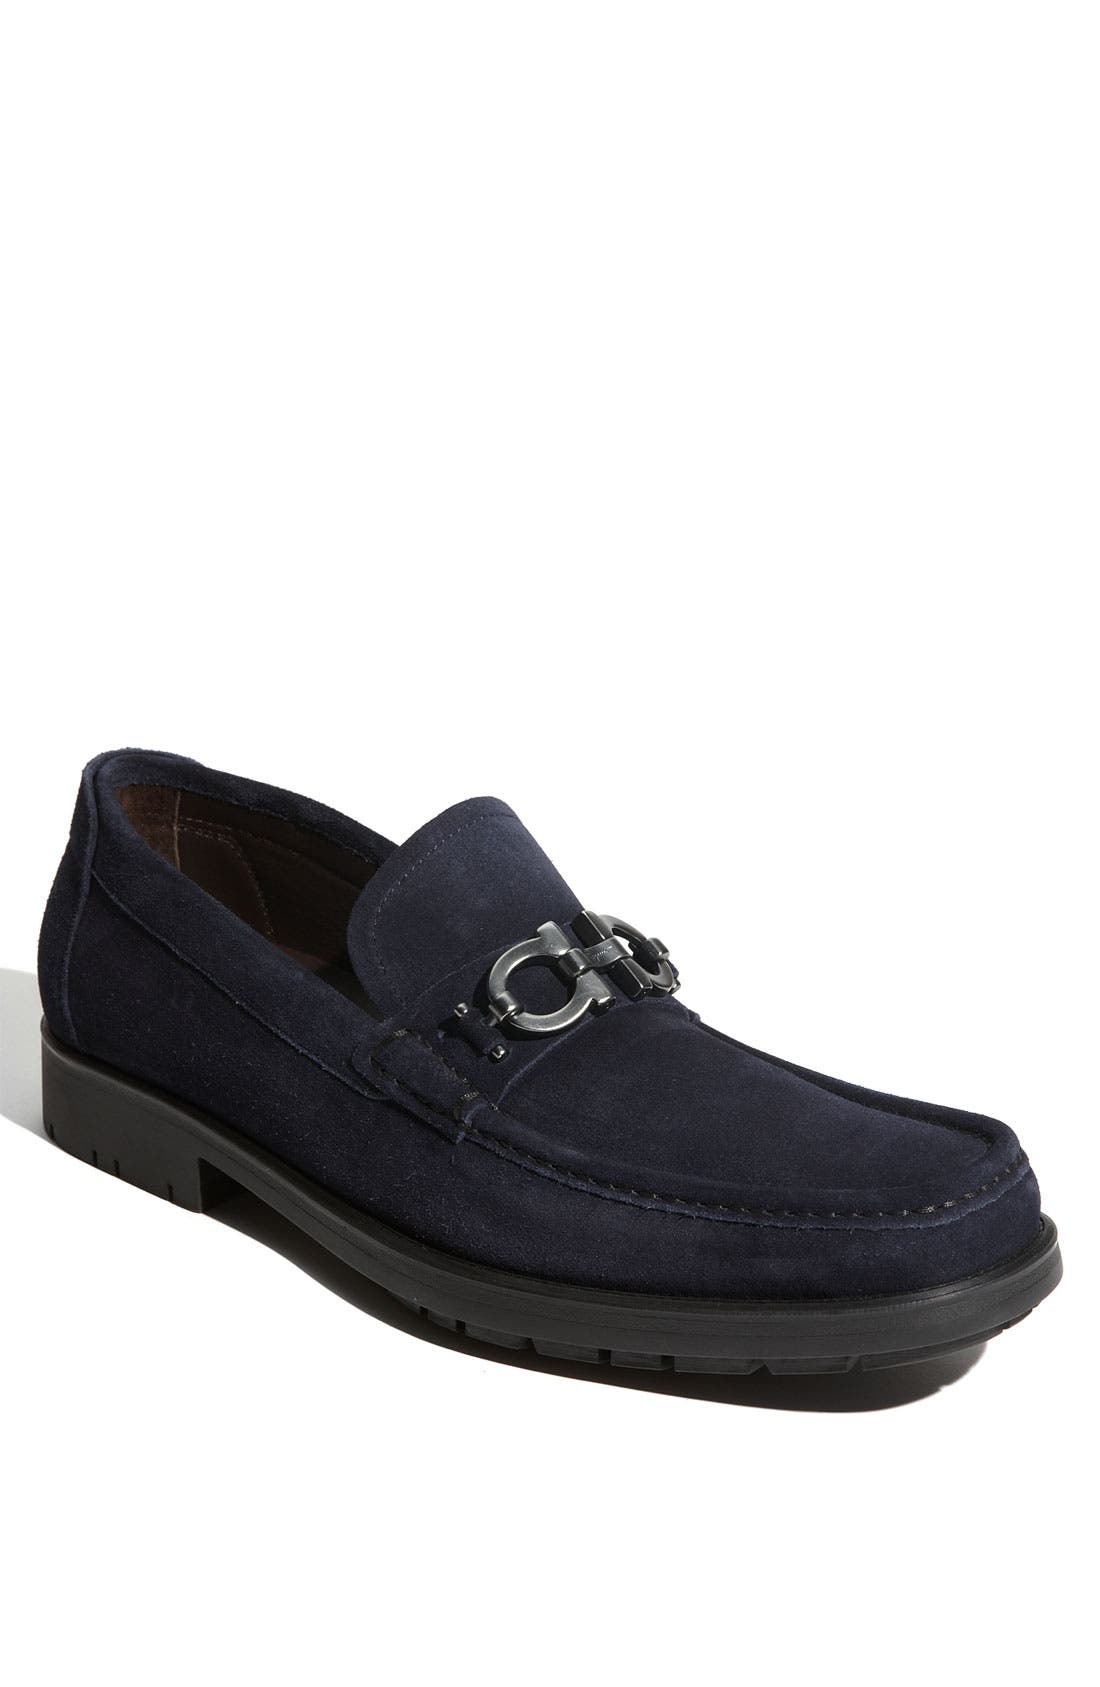 Alternate Image 1 Selected - Salvatore Ferragamo 'Master' Loafer